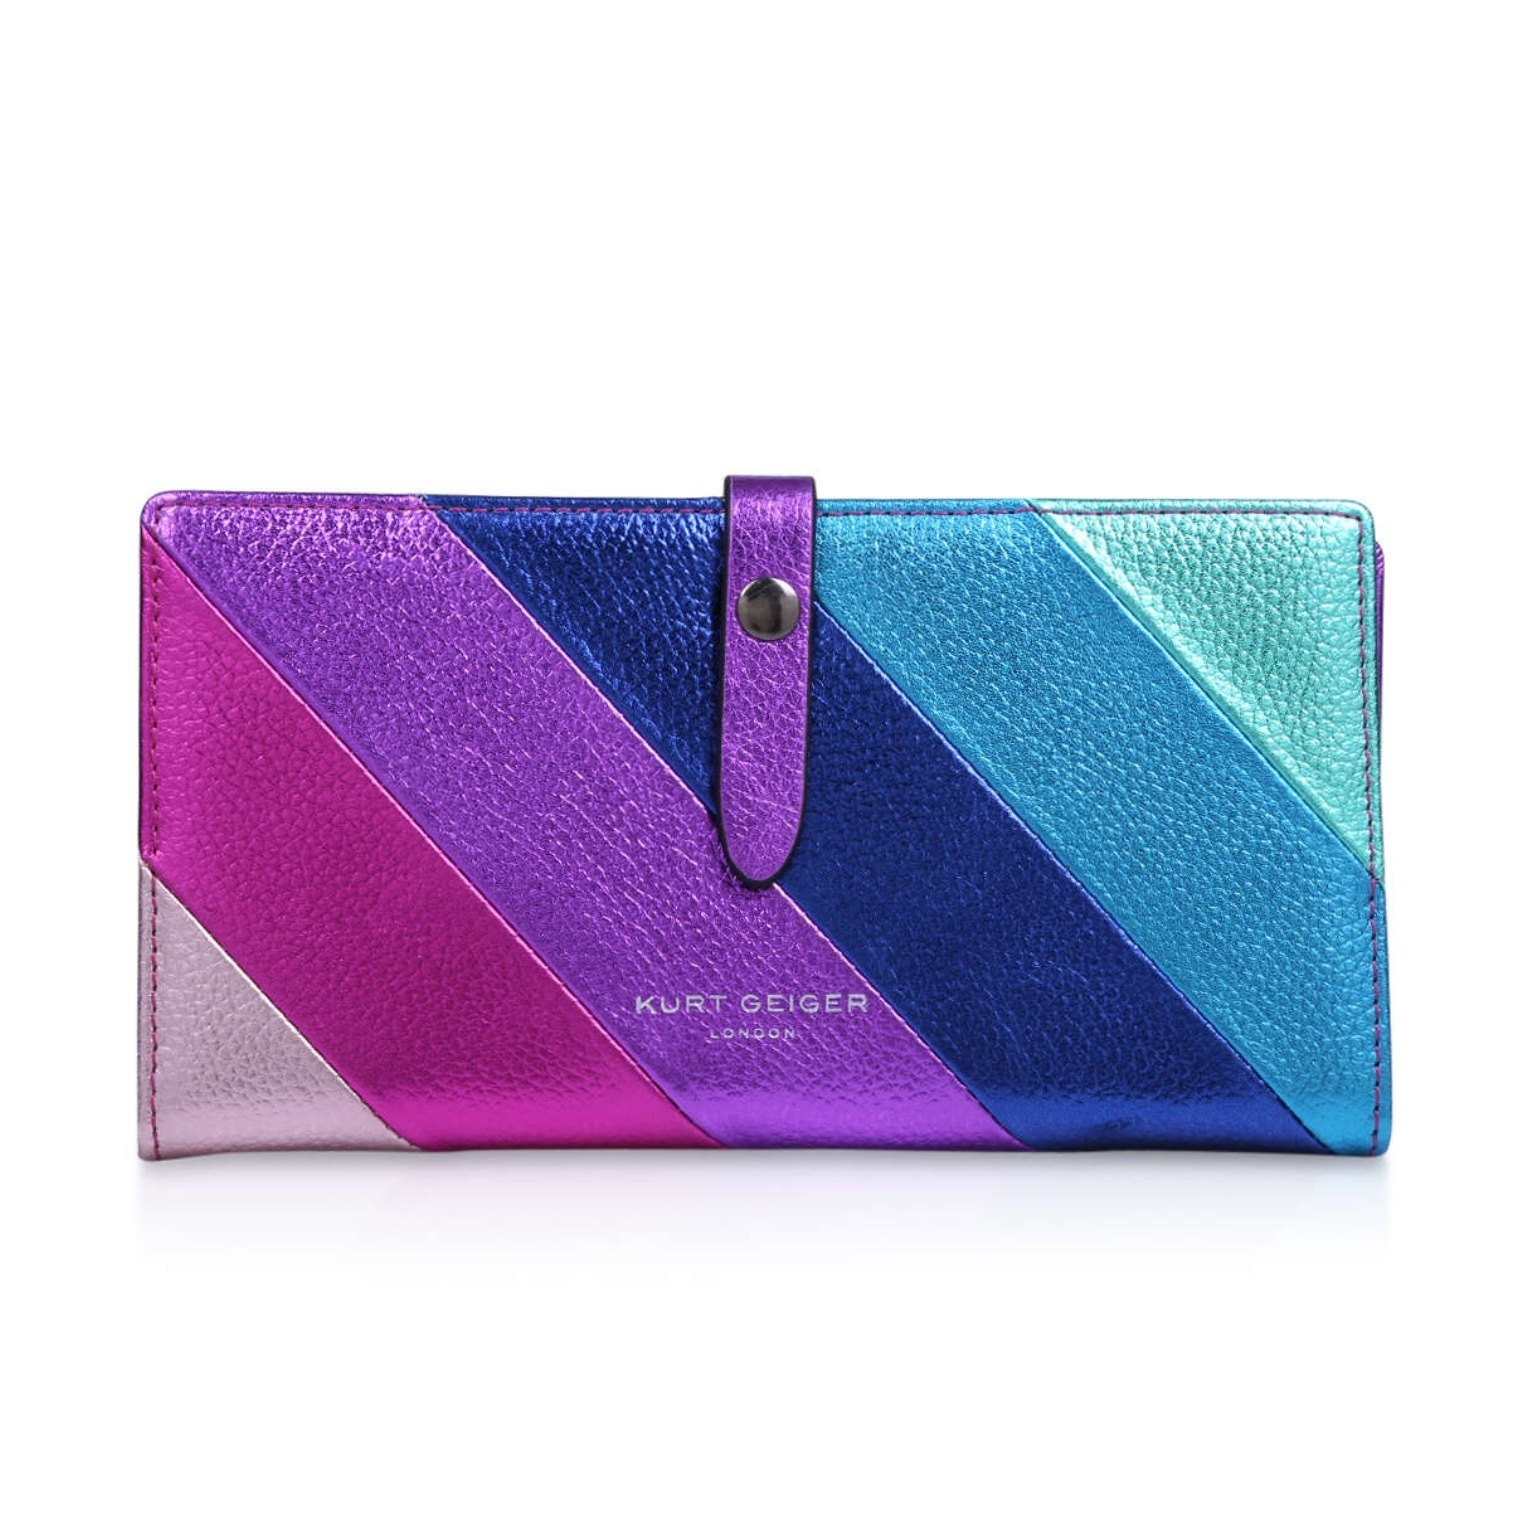 shop kurt geiger wallets & card holders